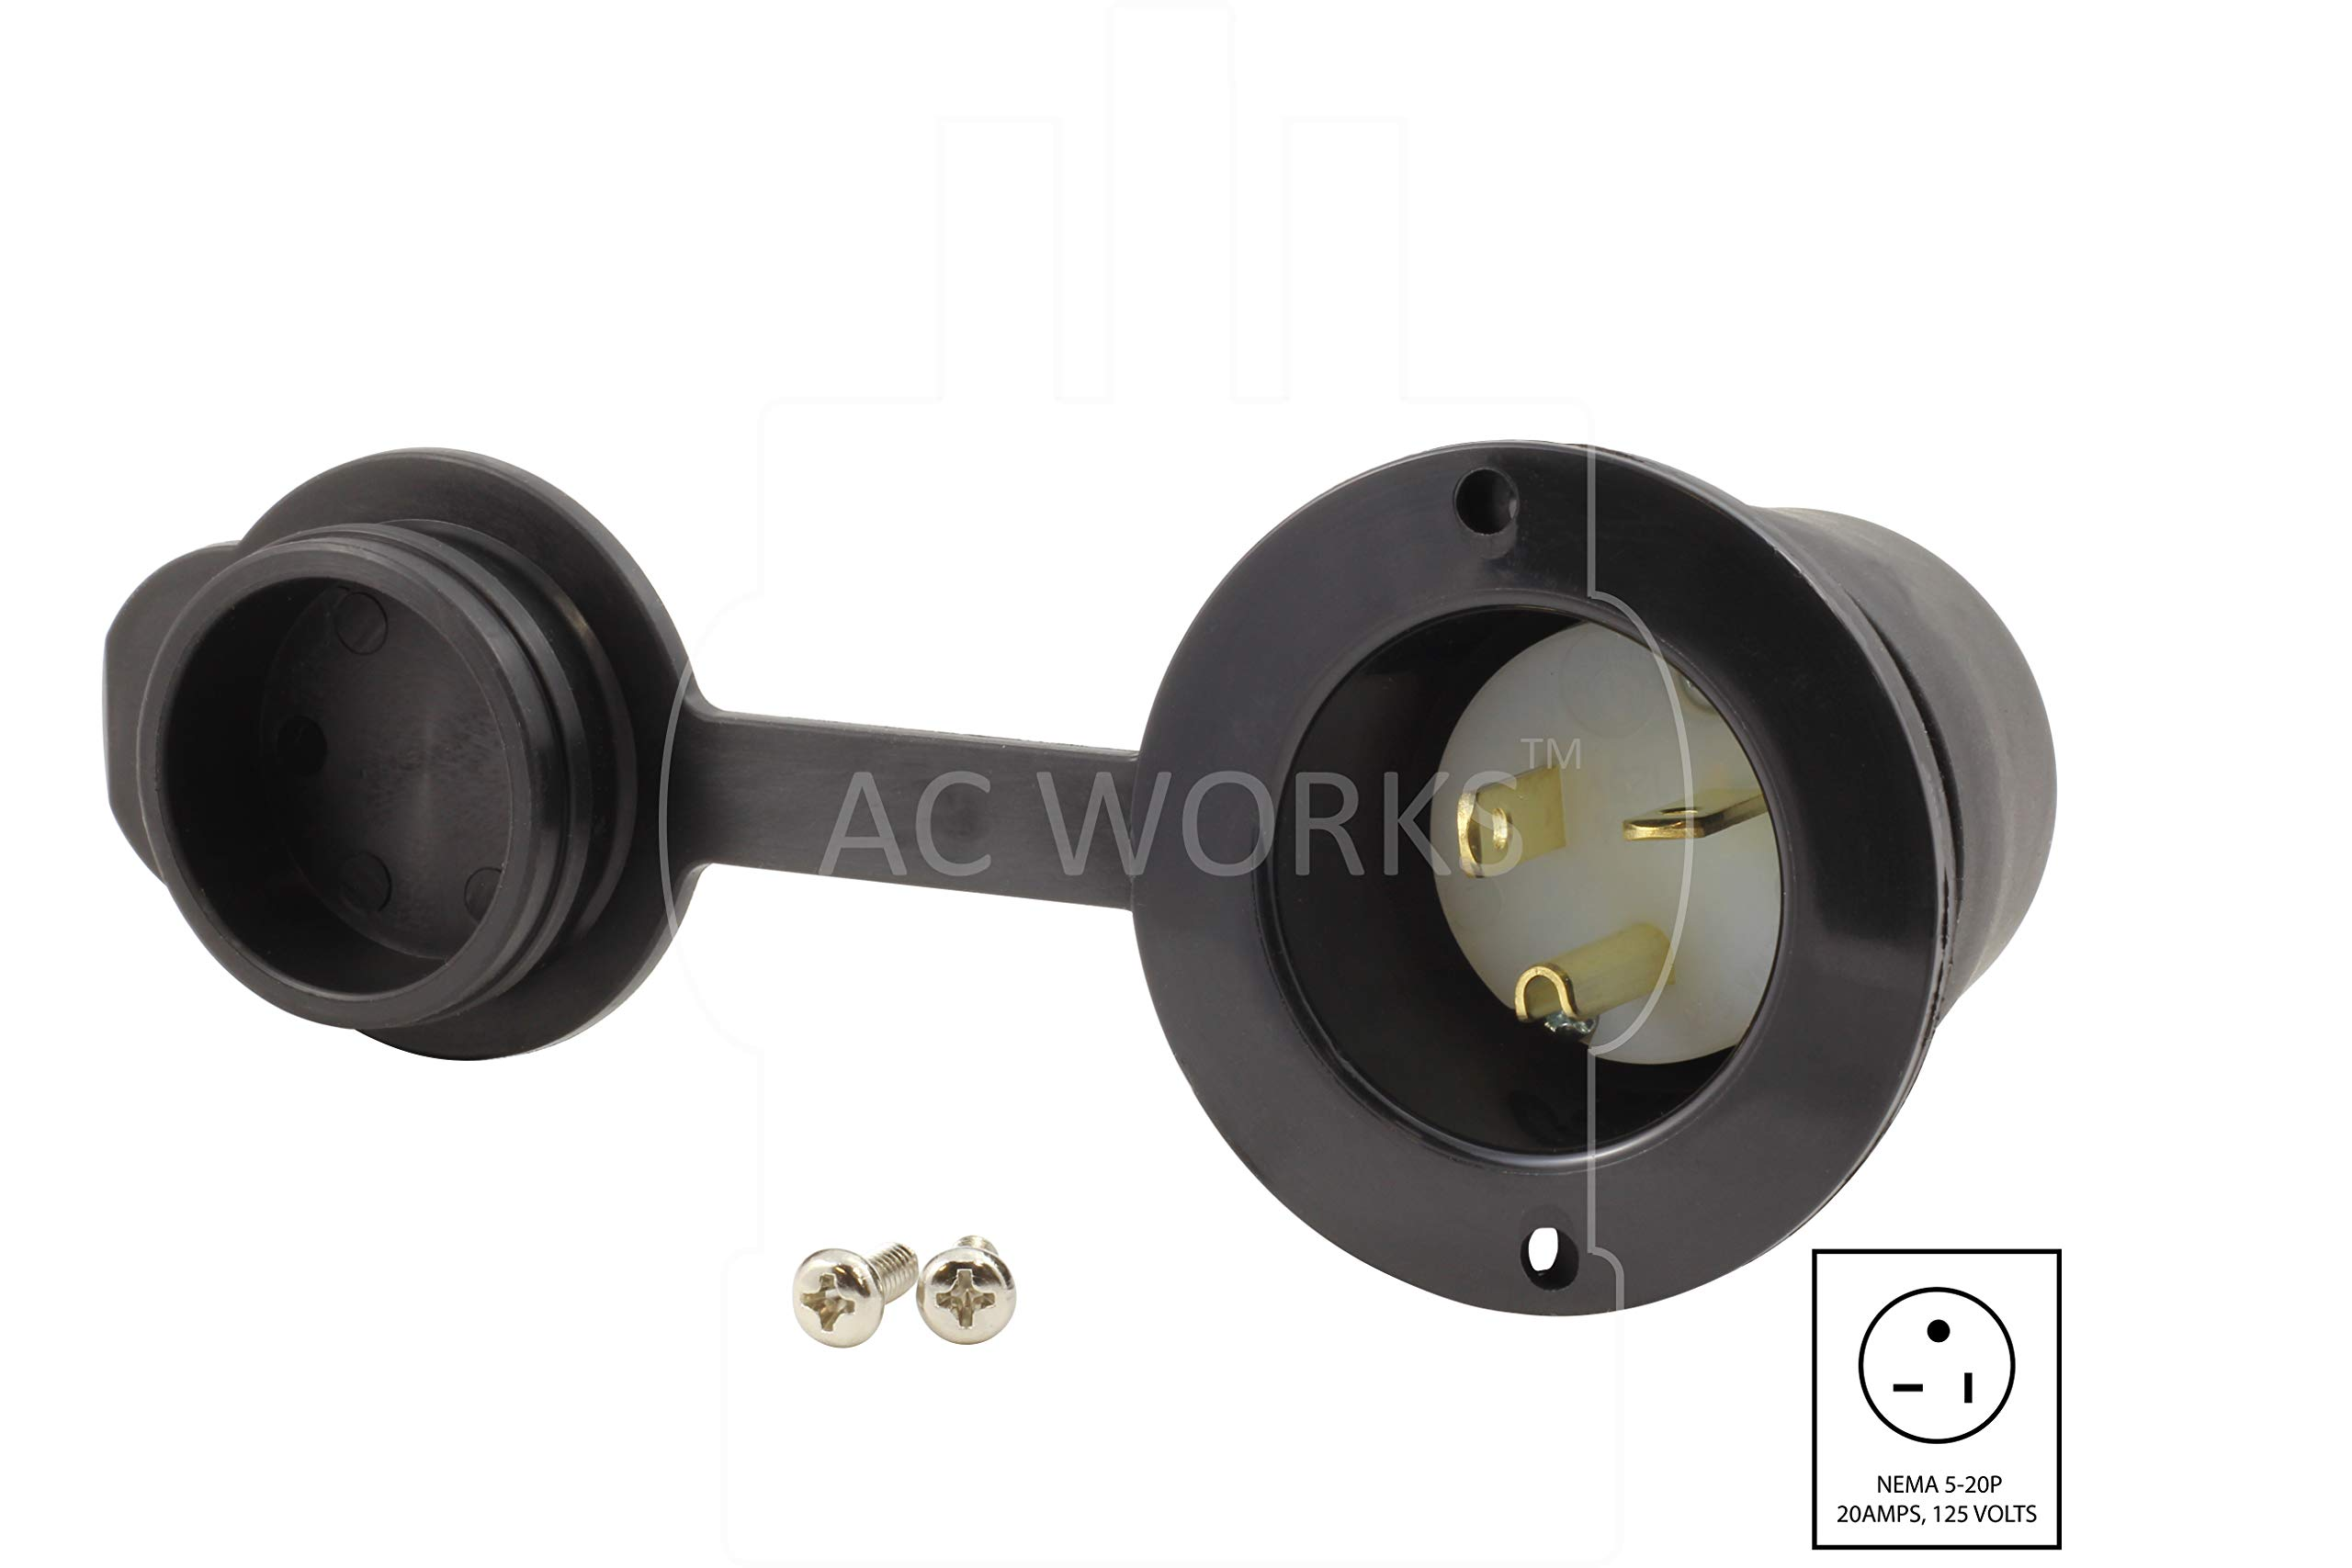 AC WORKS [ASIN520P-WC 20-Amp 125-Volt NEMA 5-20P Flanged Power Input Inlet with Weather Cover by AC WORKS (Image #2)